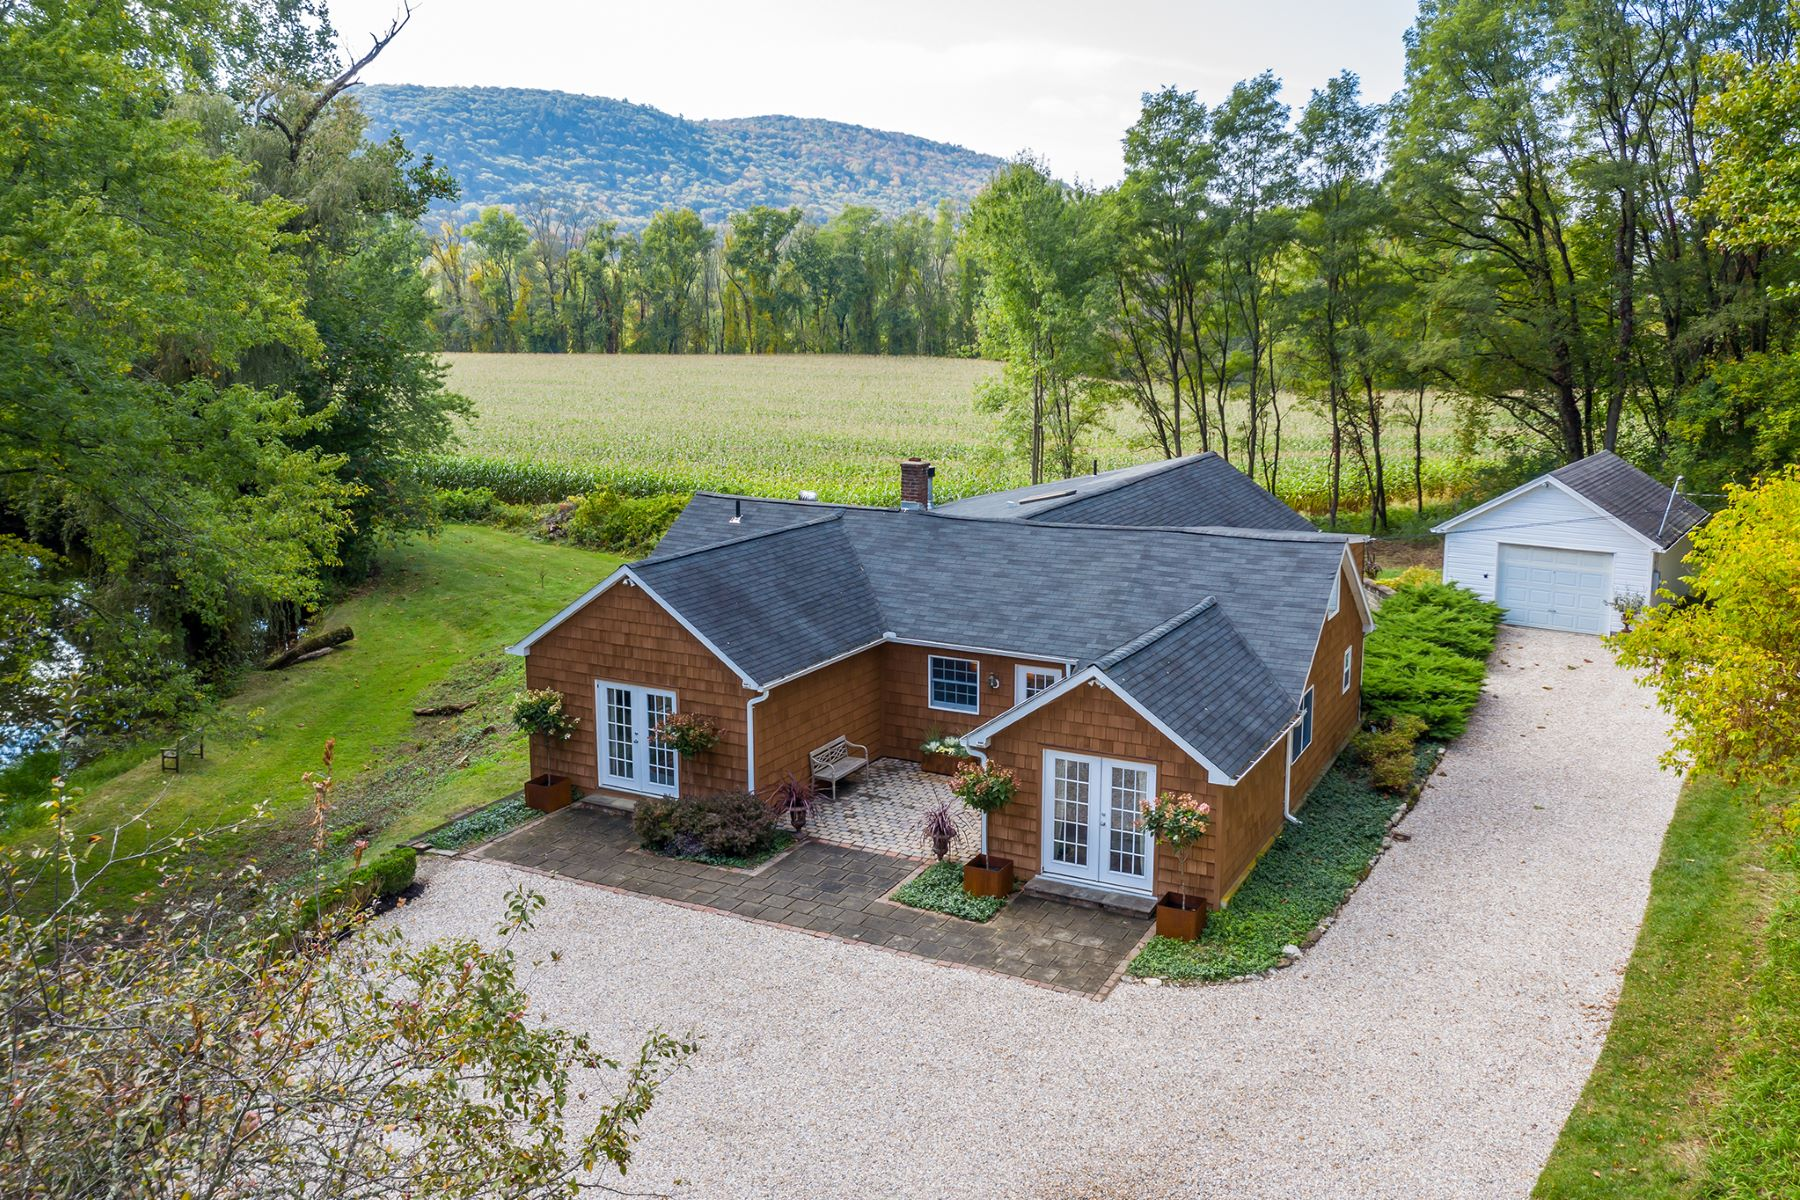 Single Family Homes for Sale at RIVERFRONT CONTEMPORARY, PROTECTED LANDS, VIEWS 15 Belden Street Falls Village, Connecticut 06031 United States